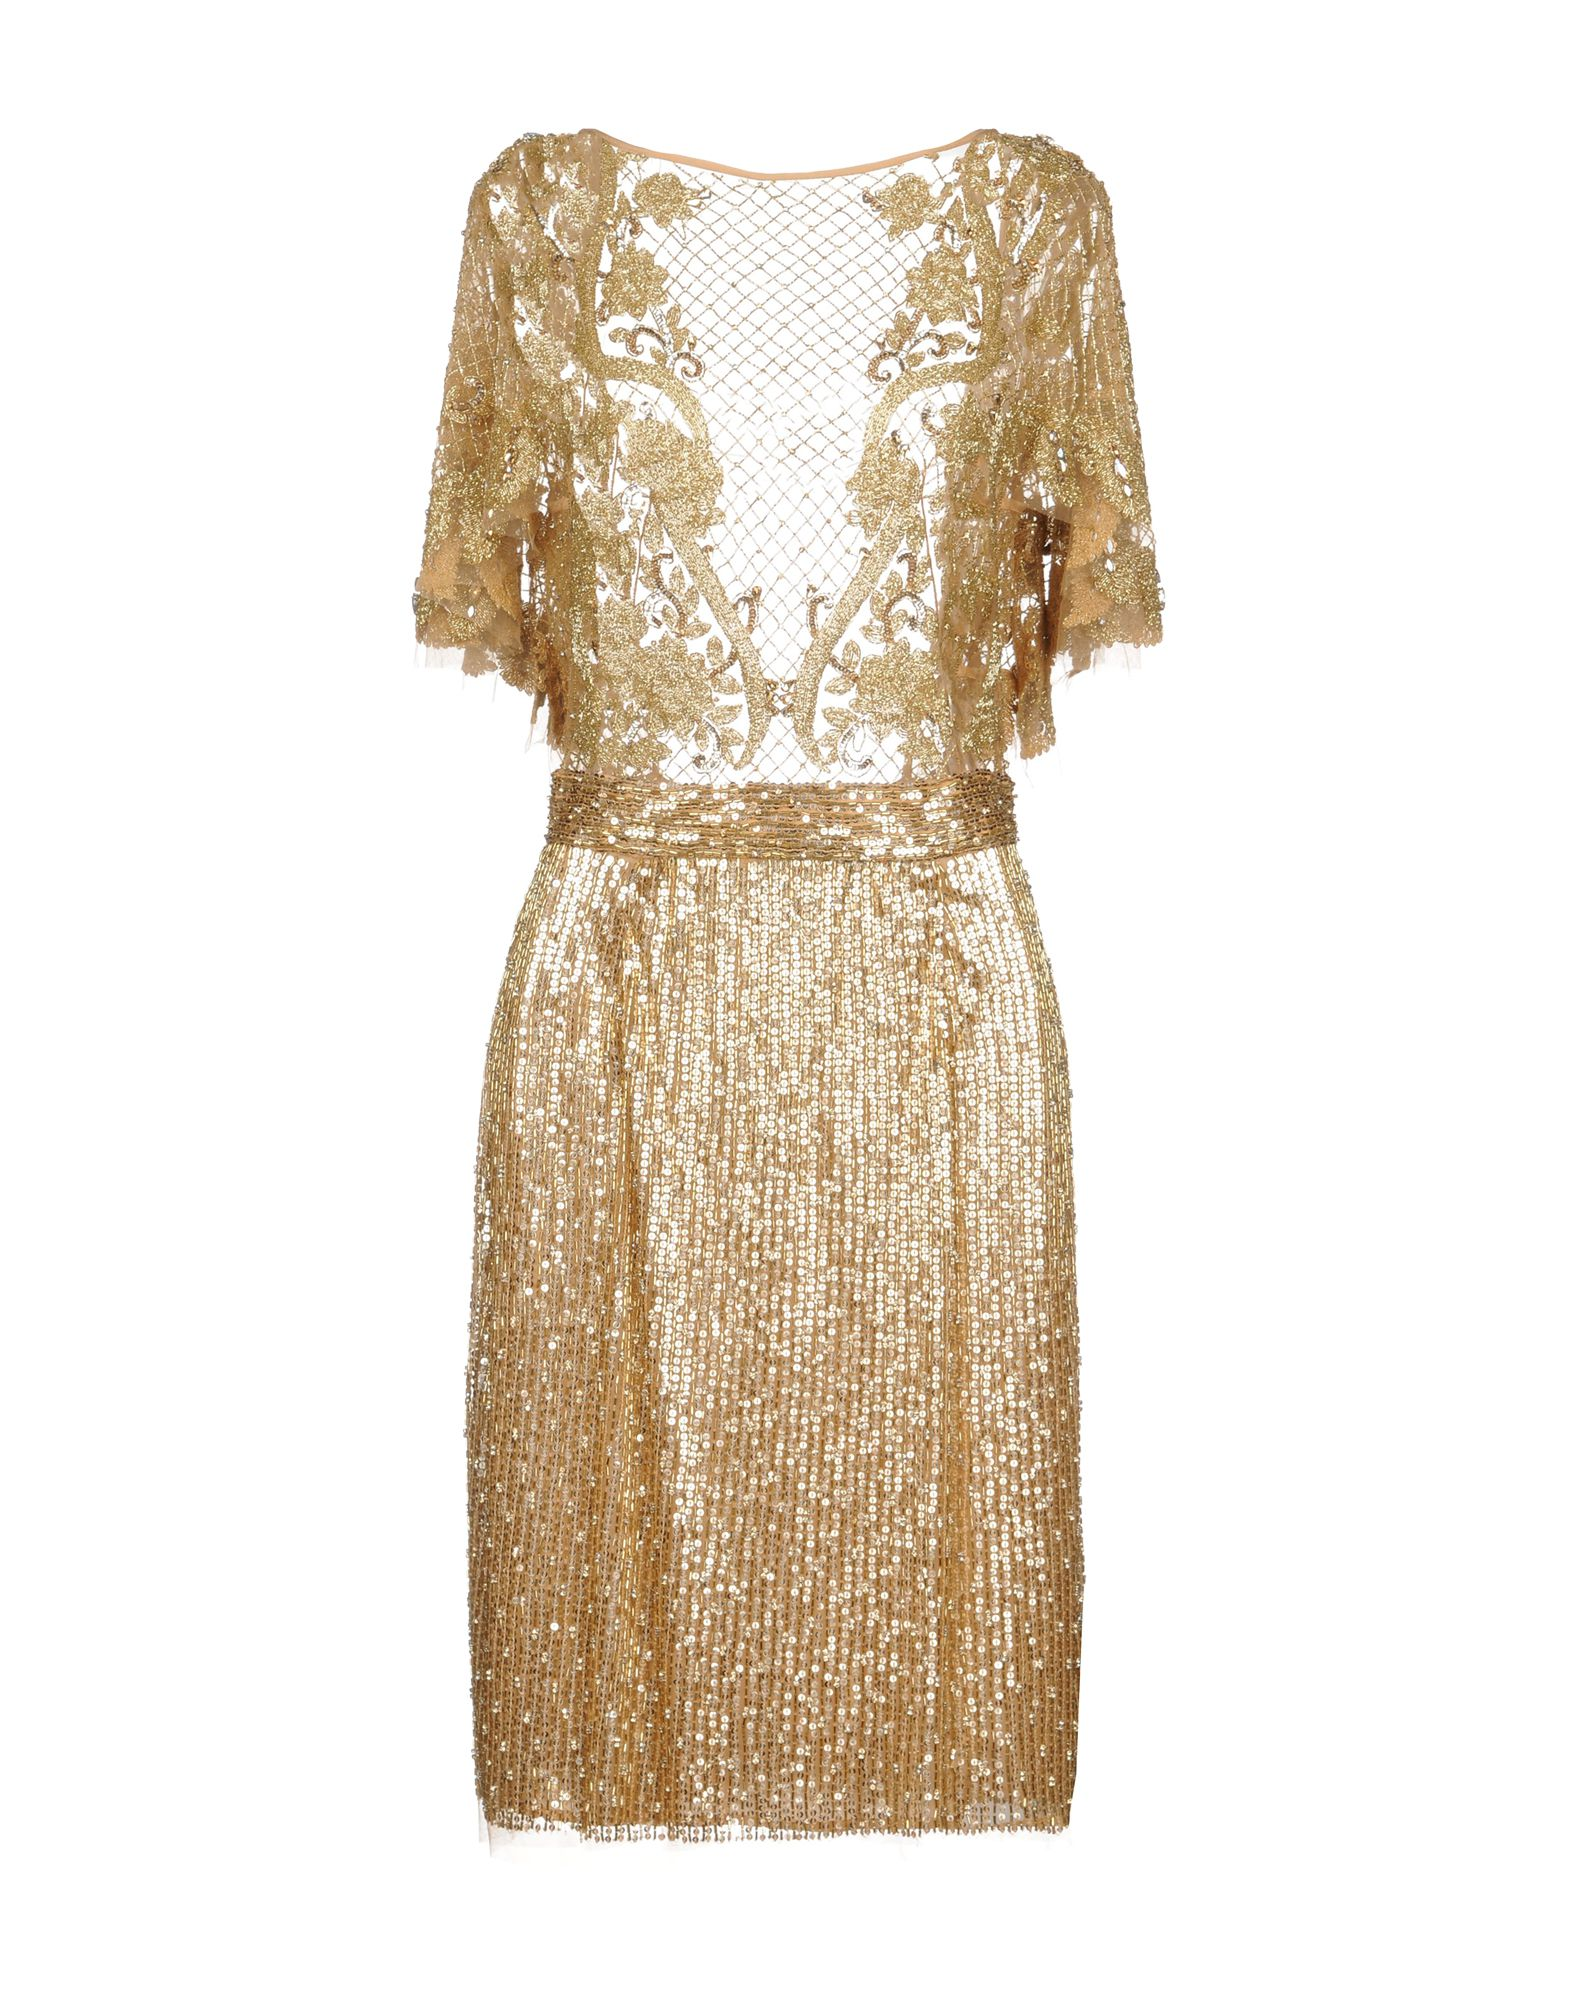 AMEN COUTURE Knee-Length Dress in Gold